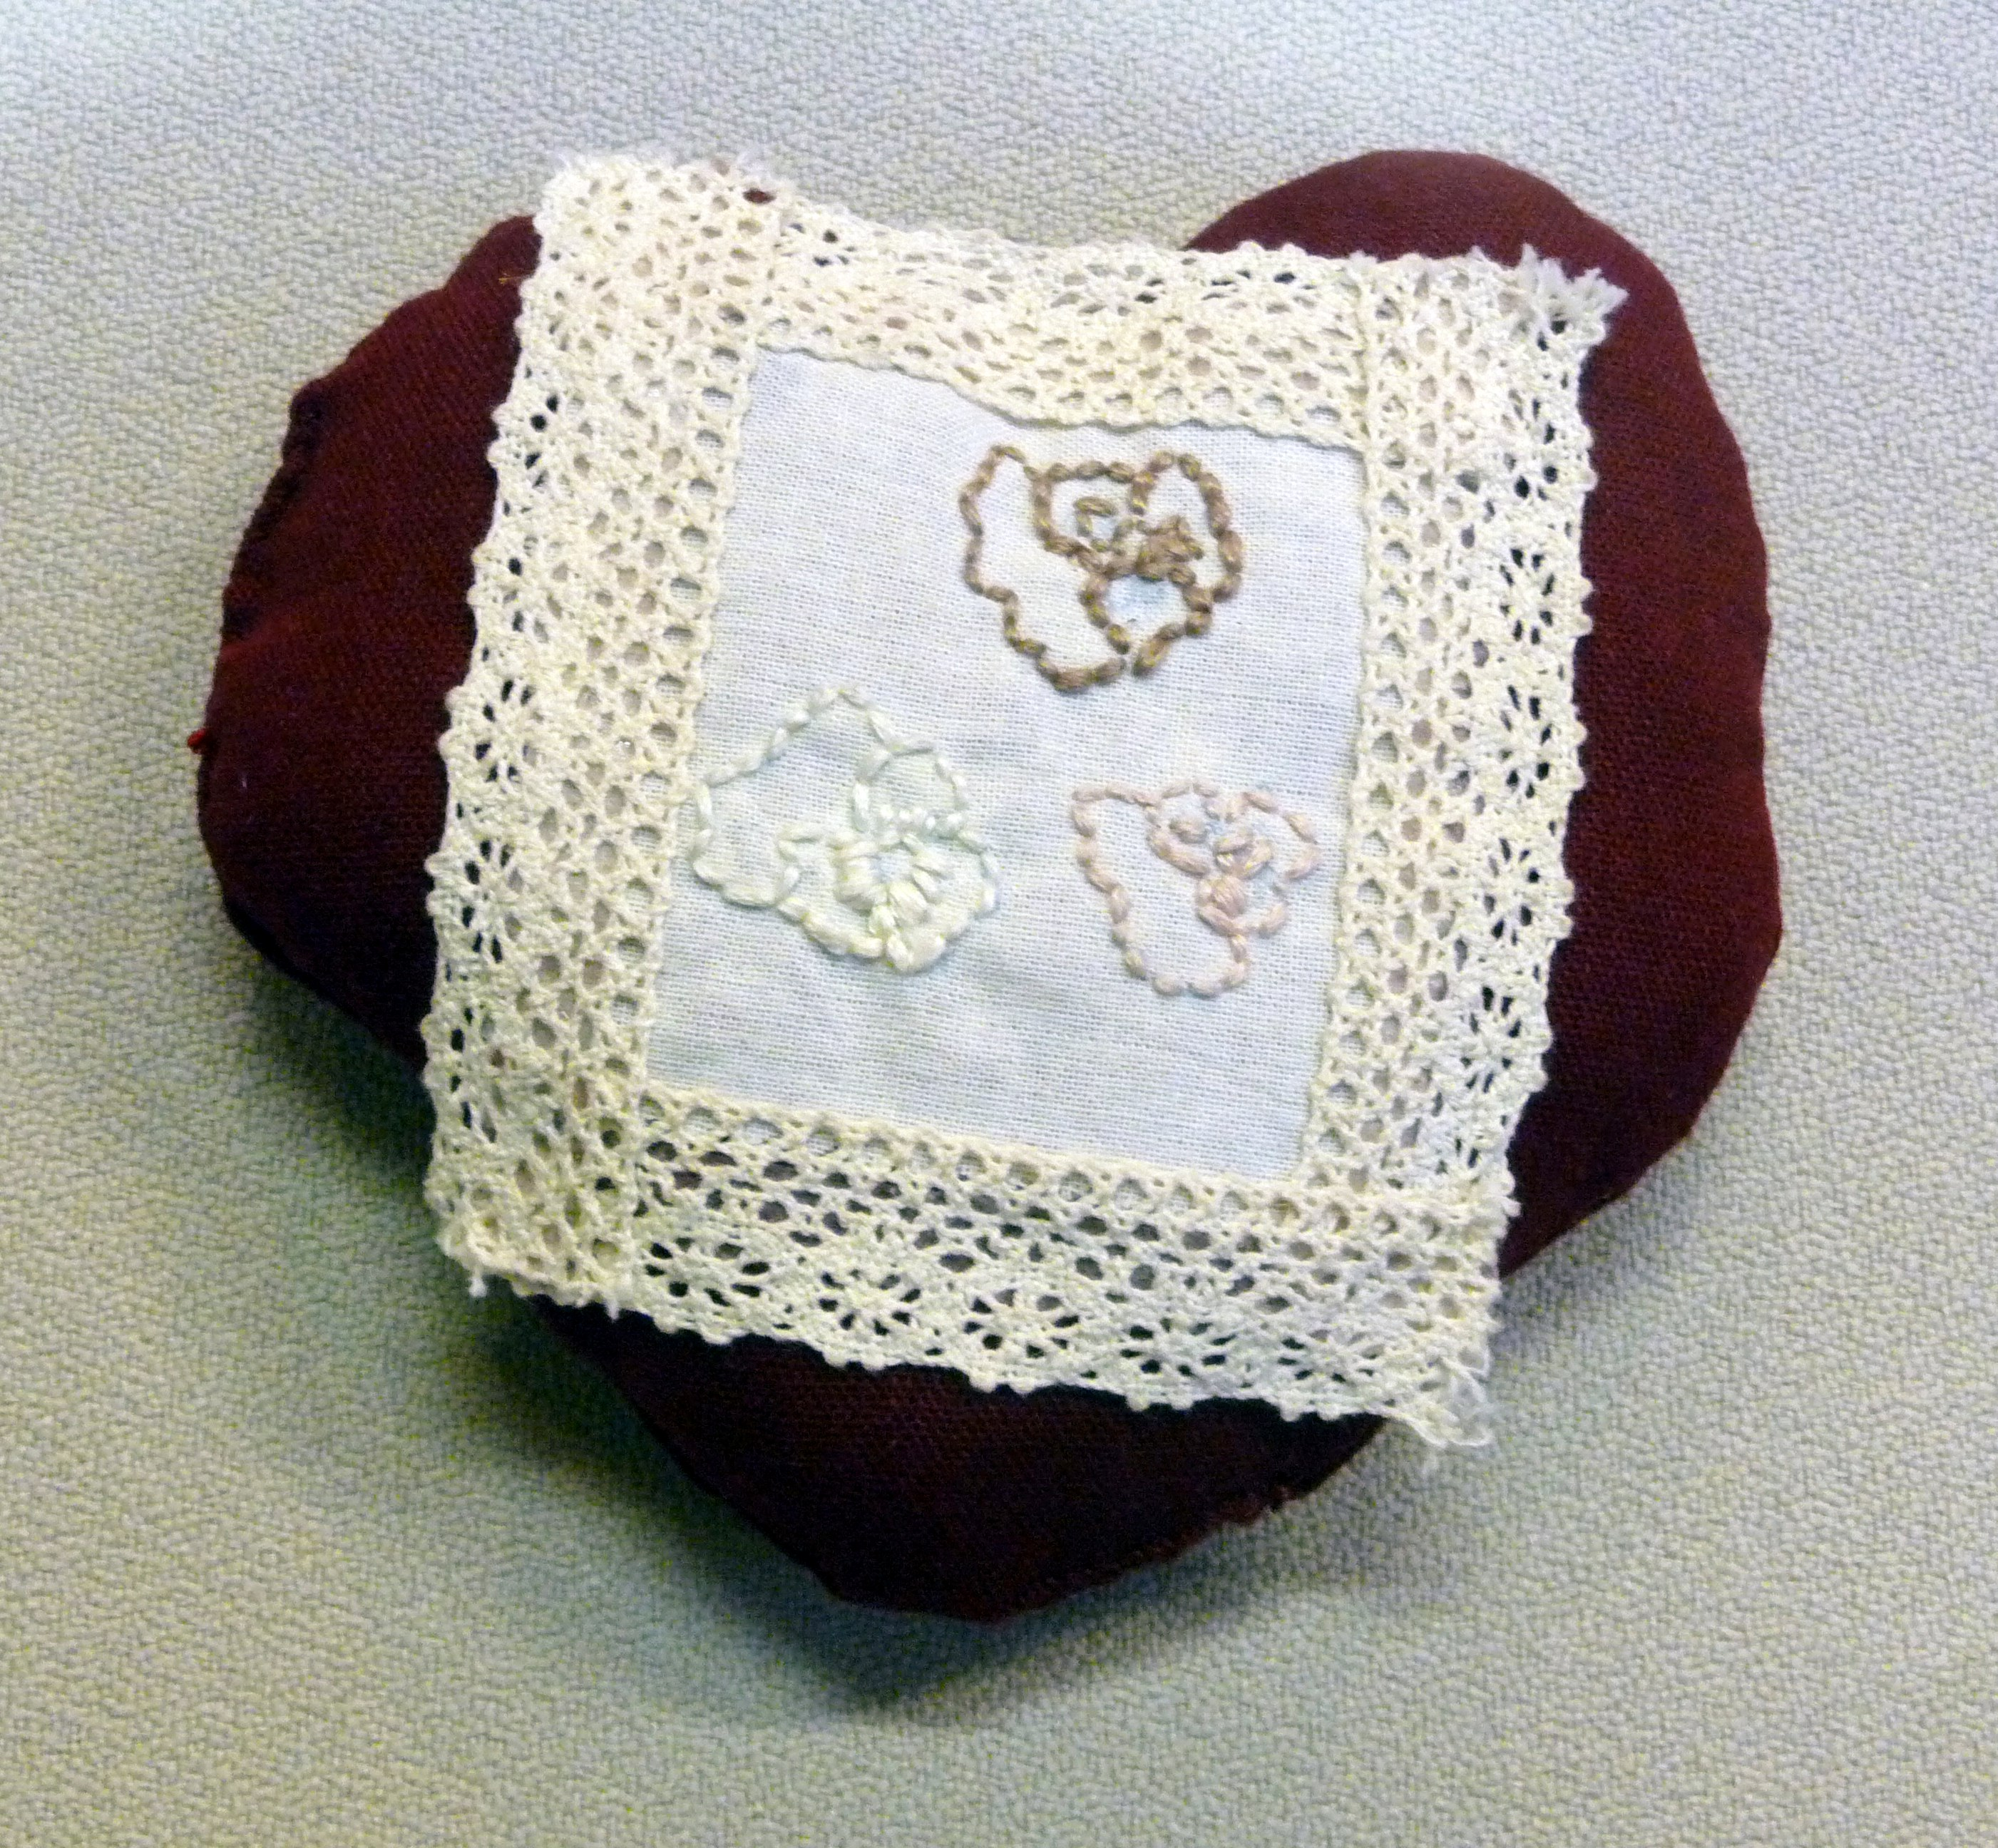 pincushion to commemorate World War 1 made by Calista Leung